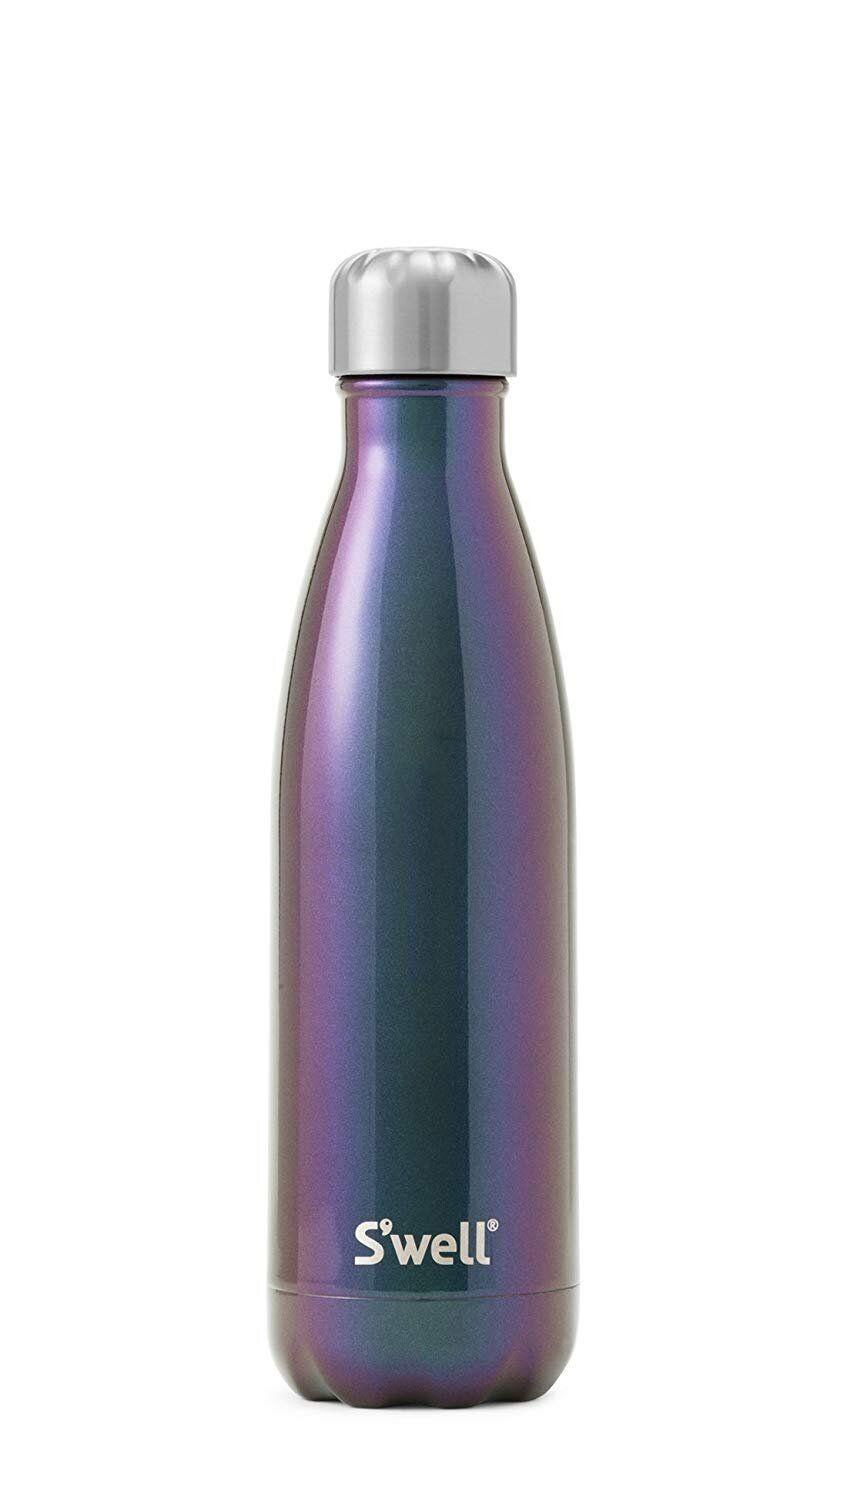 """For older kids, we recommend this stylish reusable S'well bottle that'll keep water cold until the end of class. Swap out plastic water bottles and aluminum cans of seltzer for this instead.<strong><a href=""""https://amzn.to/2YurOUl"""" target=""""_blank"""" rel=""""noopener noreferrer"""">Find the S'well Vacuum Insulated Stainless Steel Water Bottle for $21 on Amazon</a></strong>."""